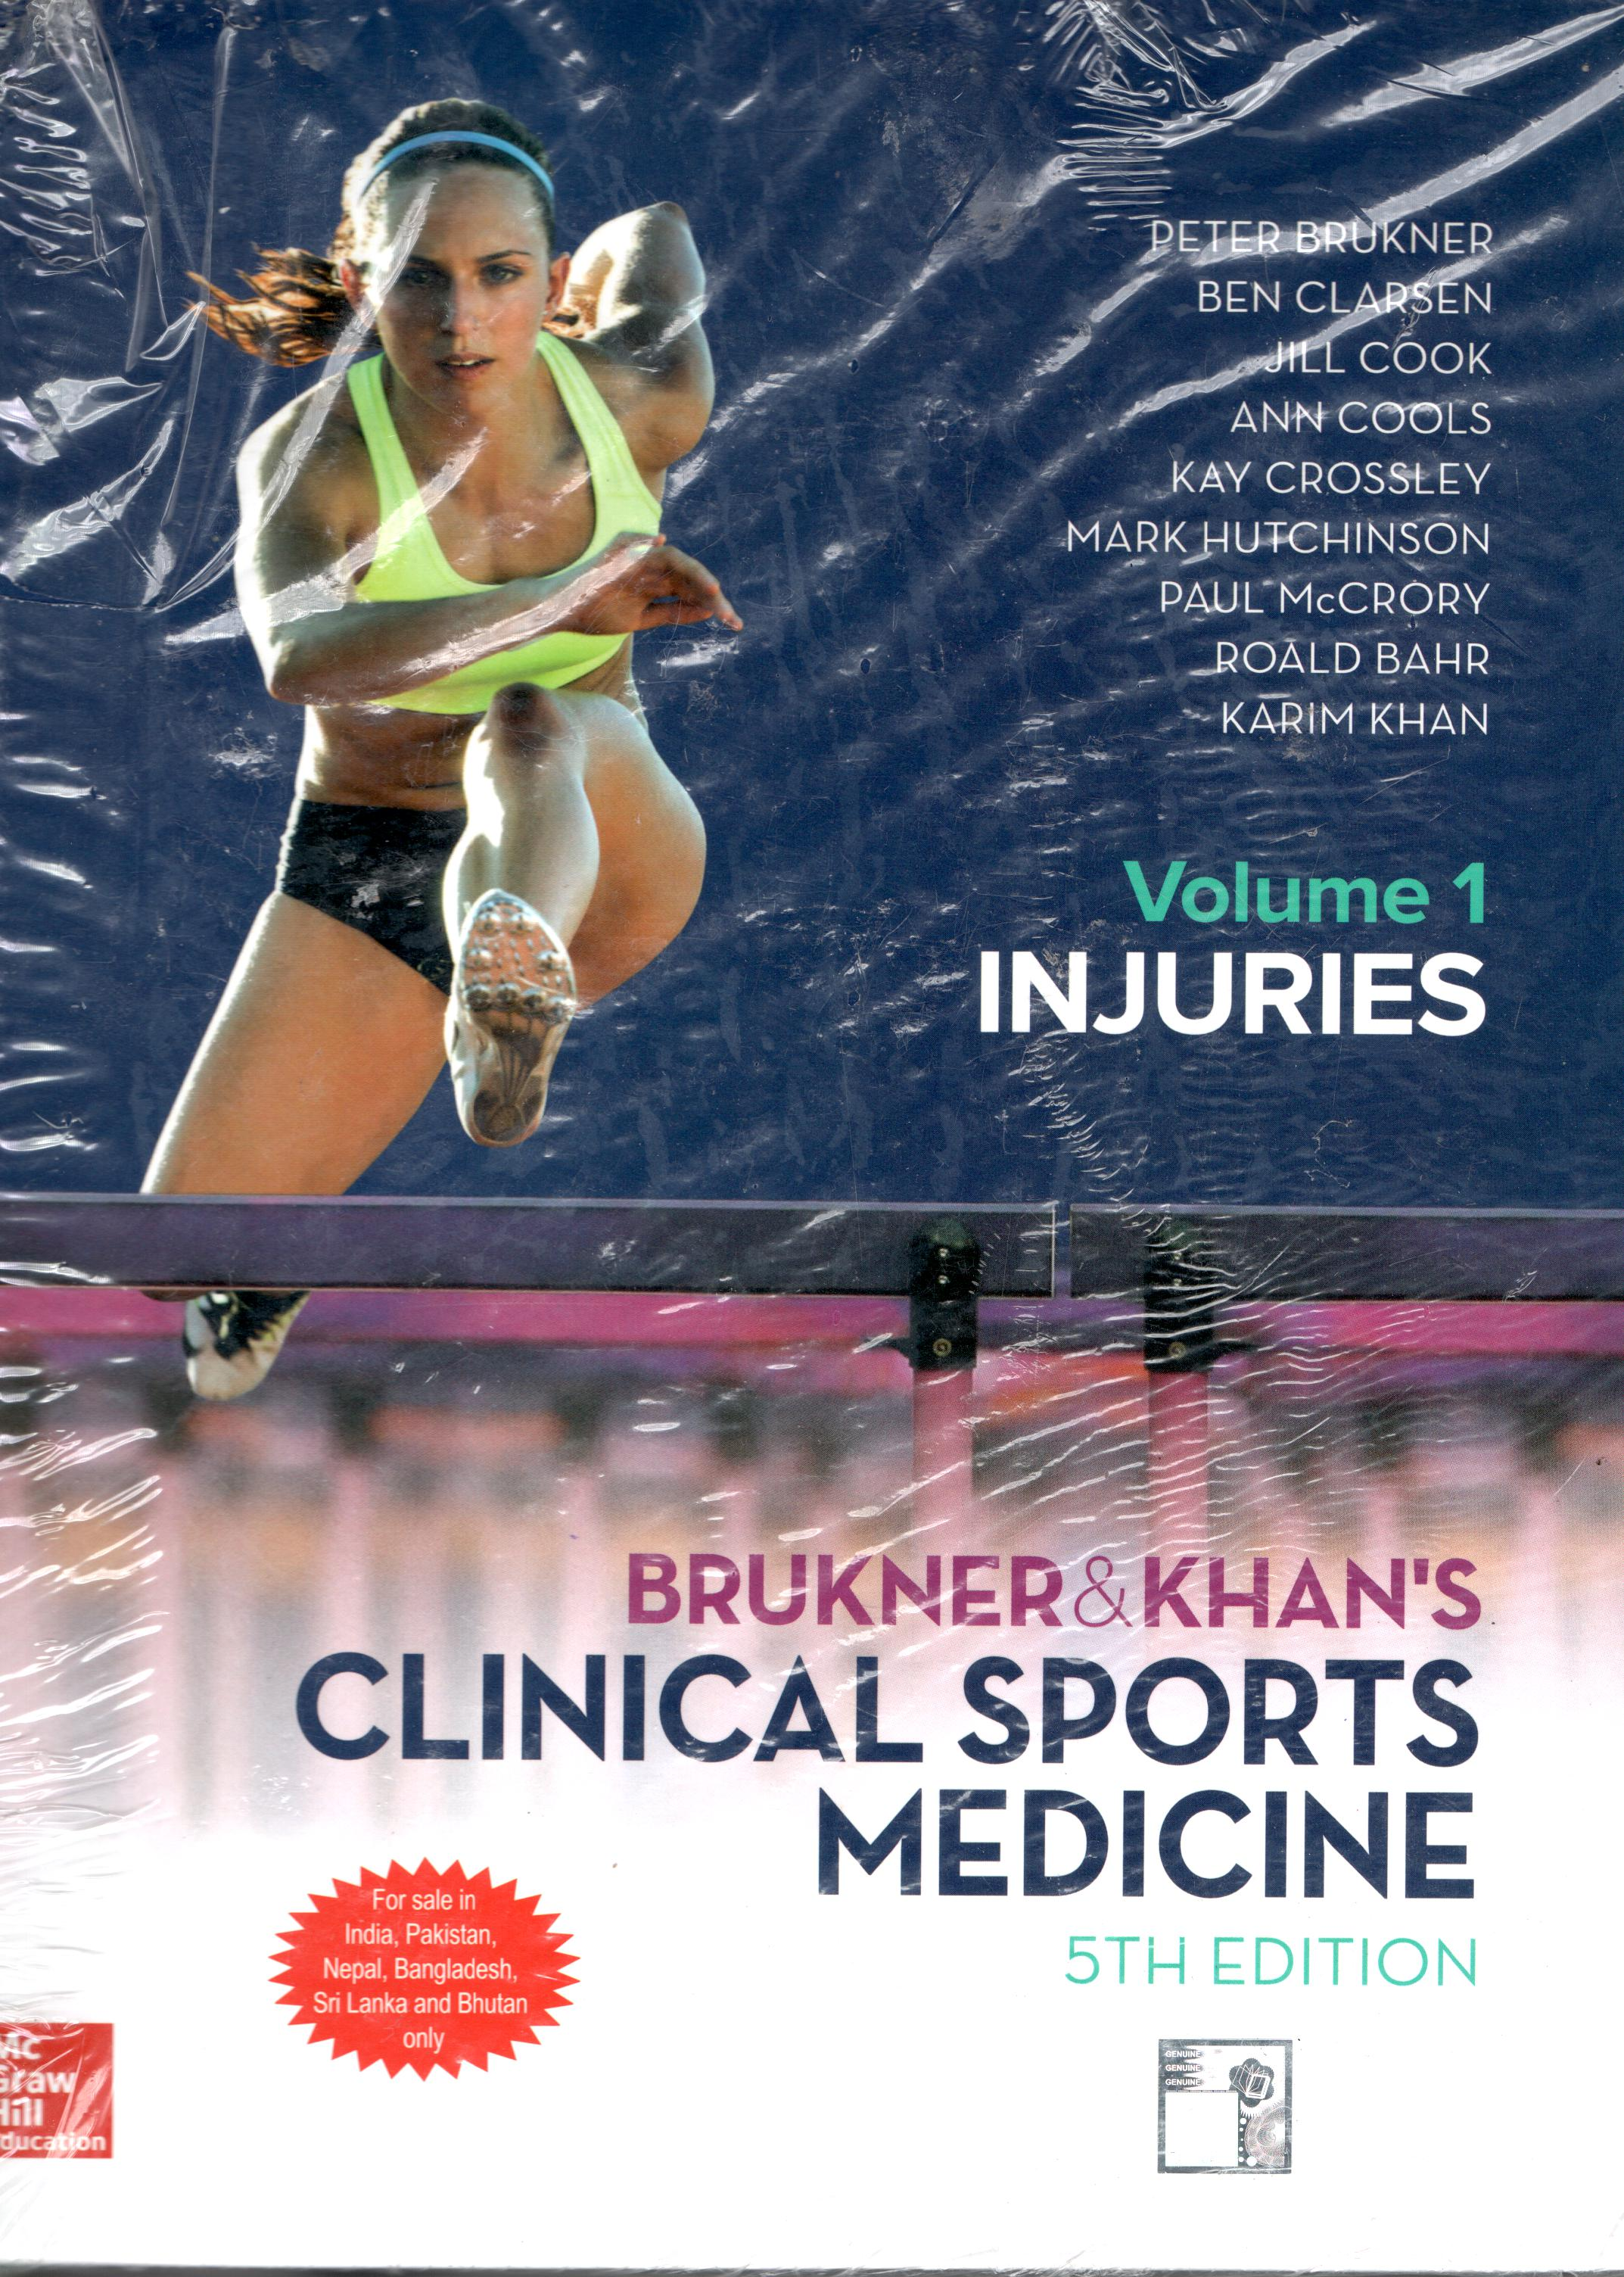 CLINICAL SPORTS MEDICINE VOLUME 1 - 5TH EDITION